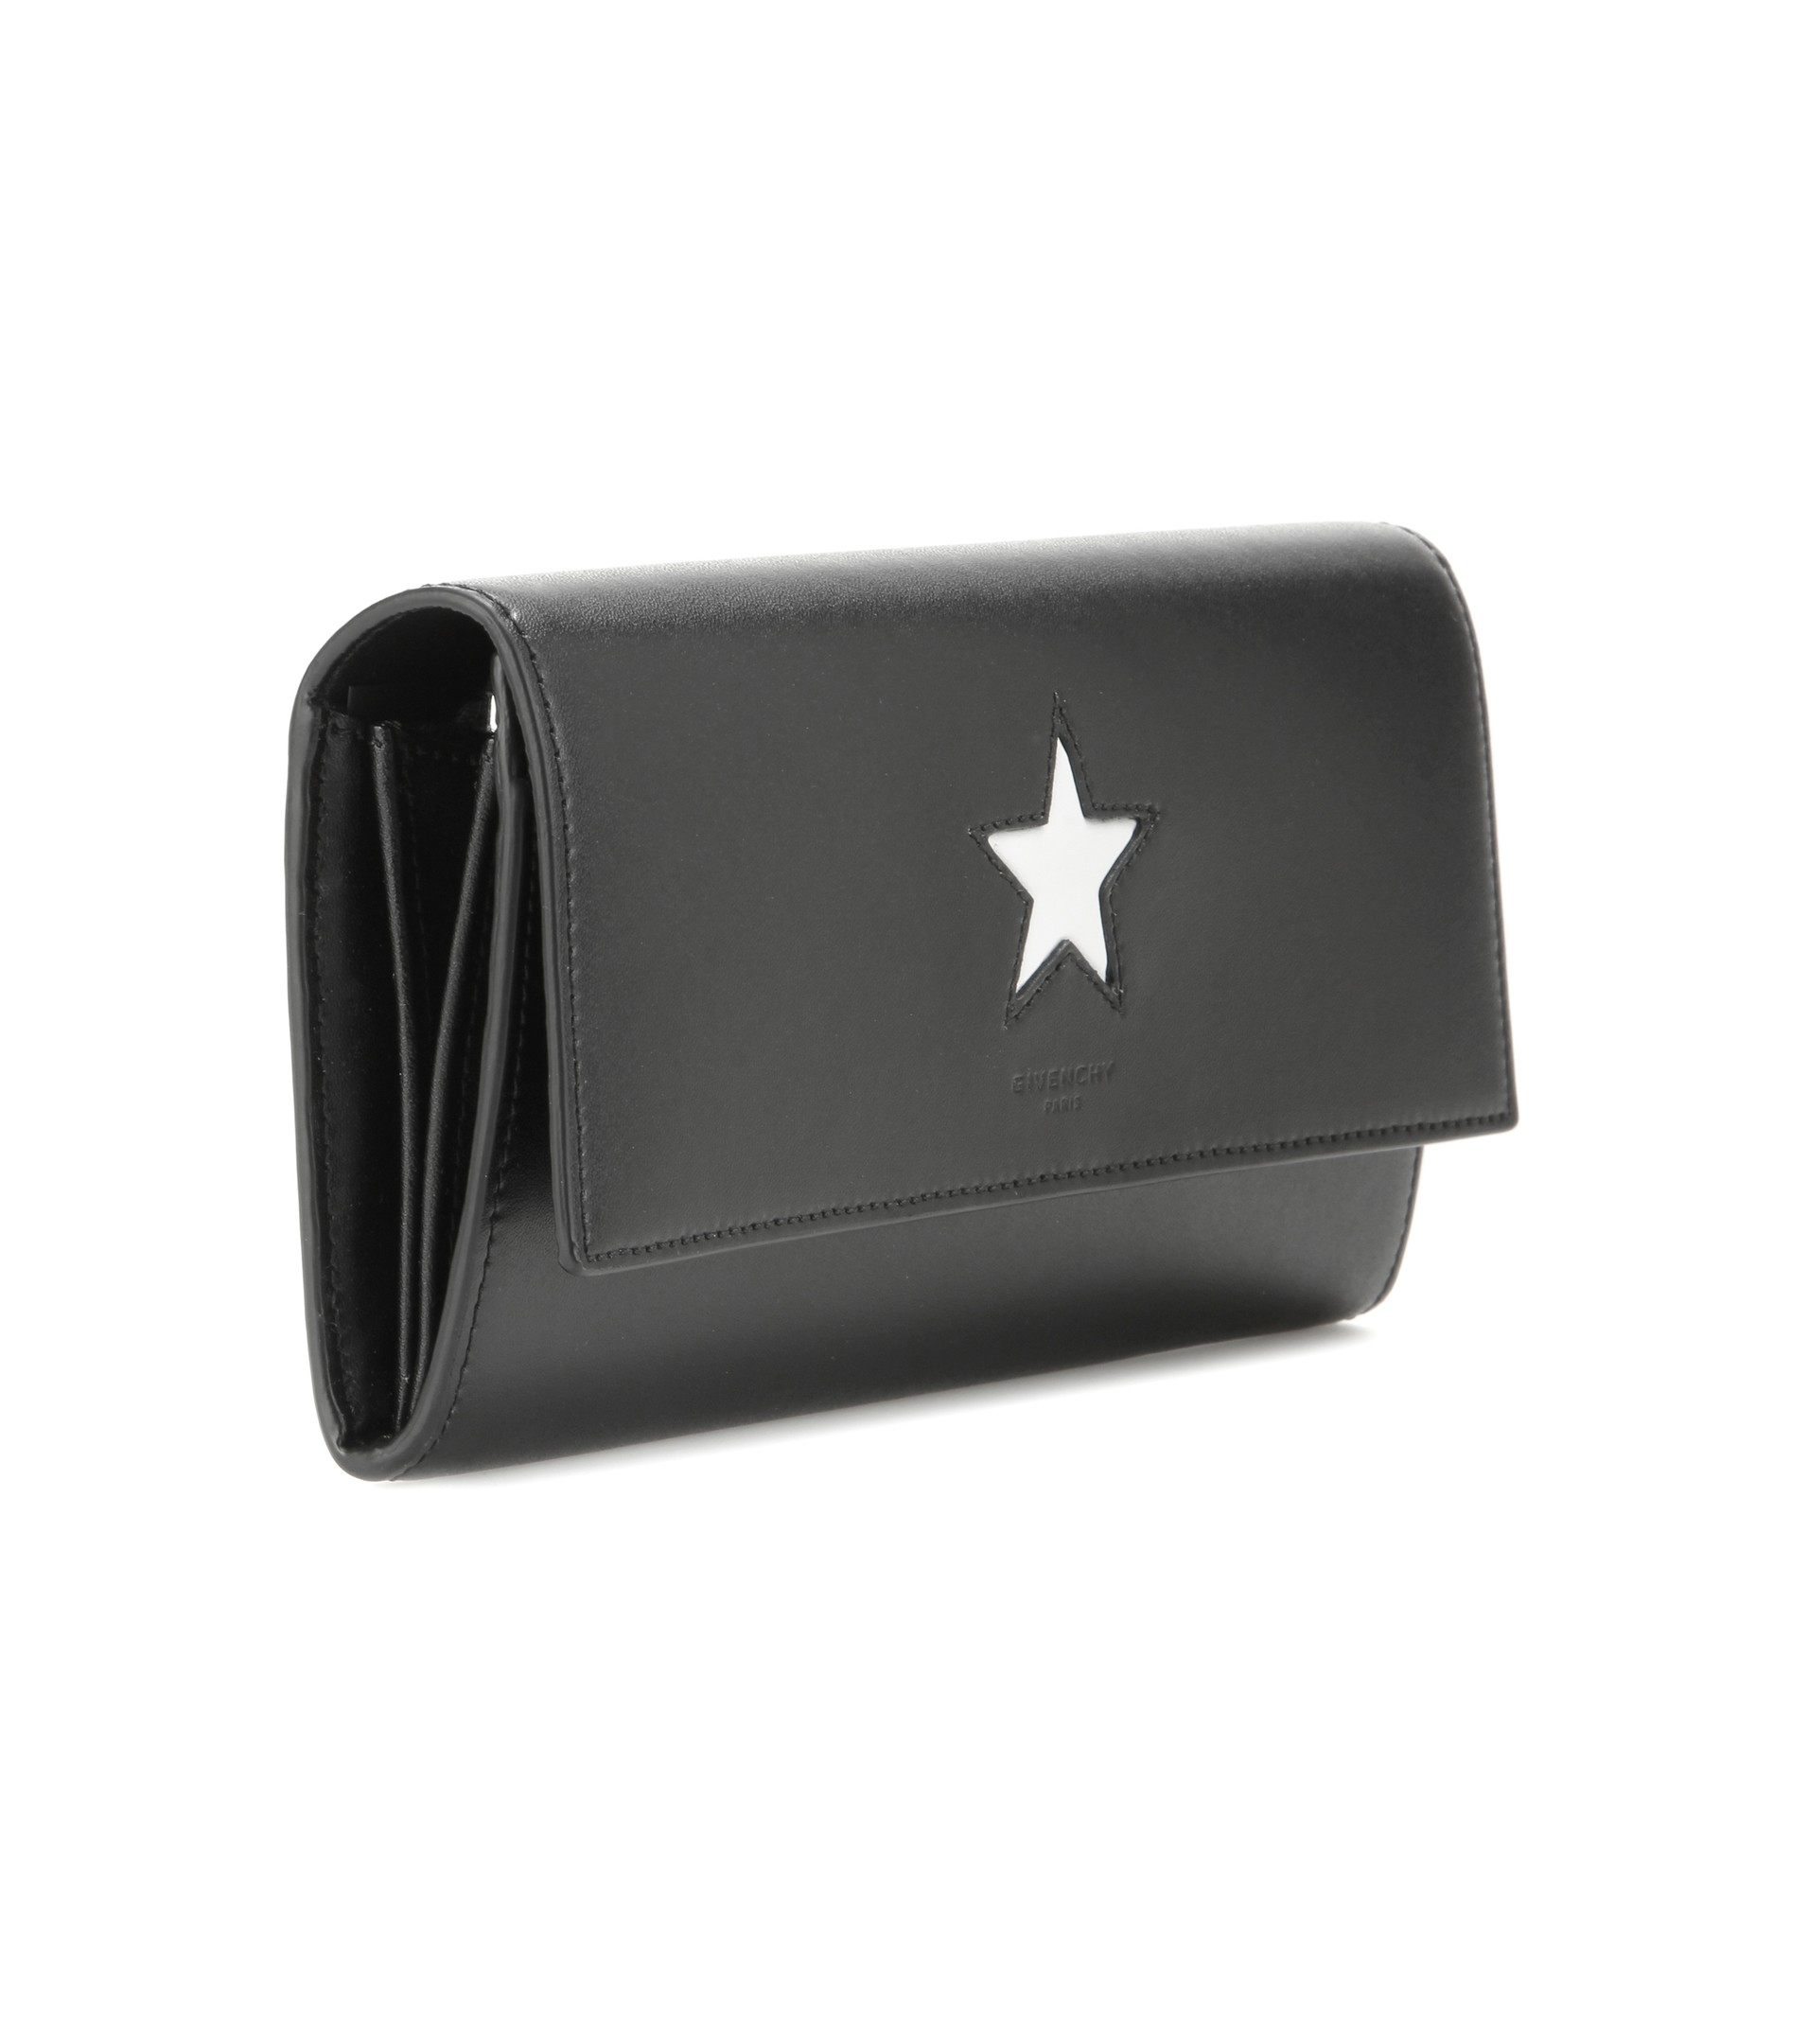 3002b4489d8 Givenchy Pandora Leather Wallet in Black - Lyst